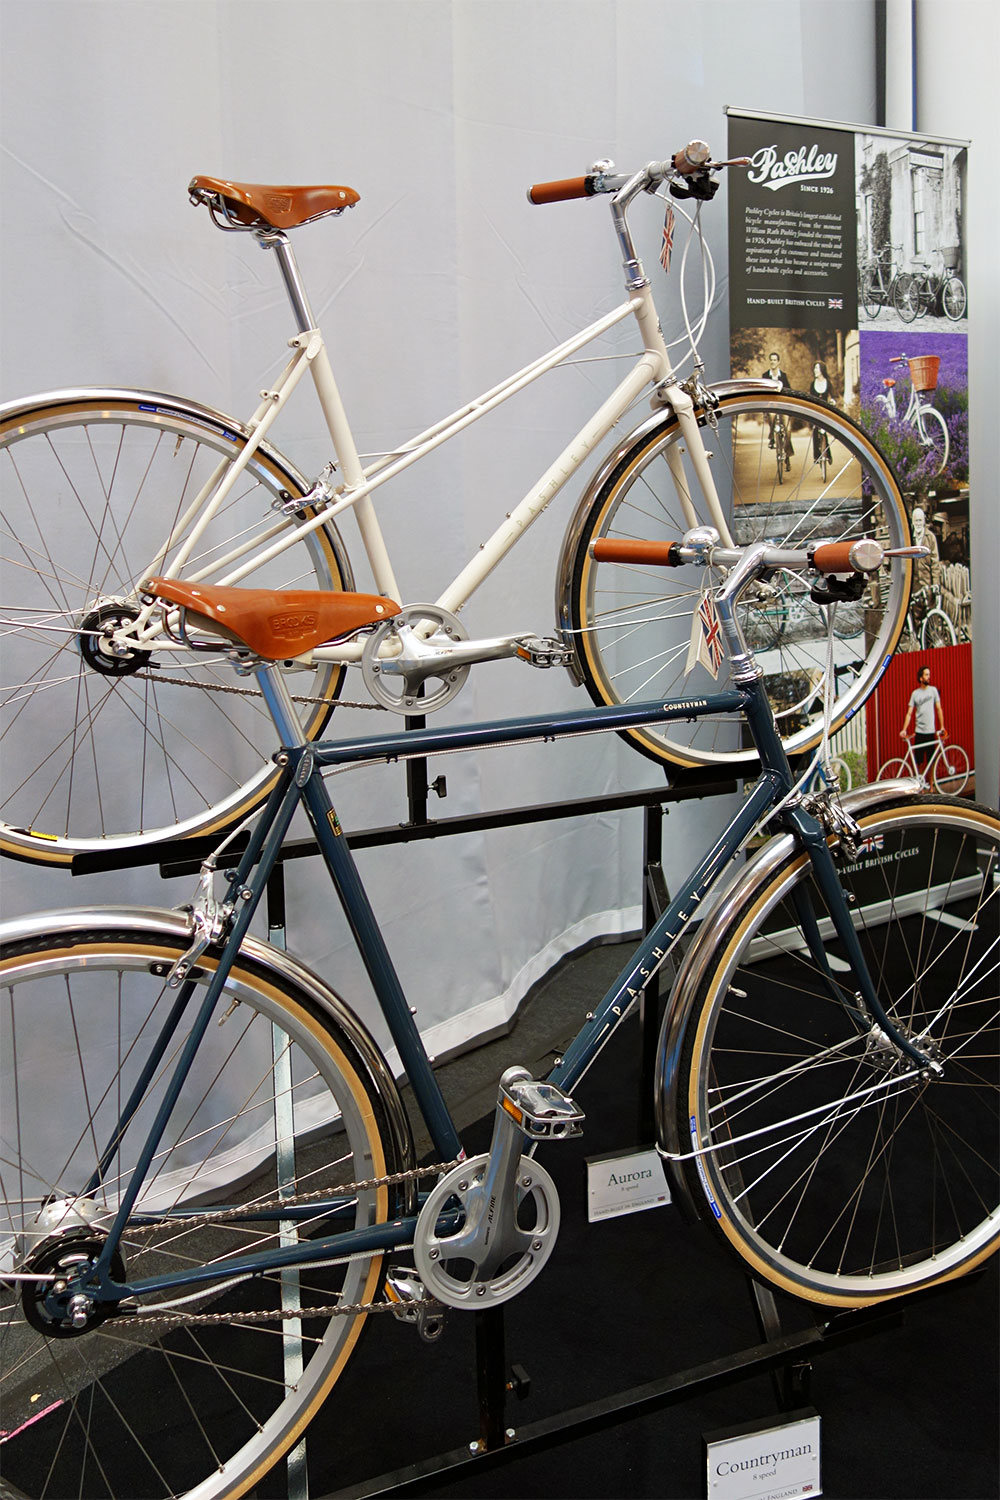 Eurobike-2014-Pashley-Countryman